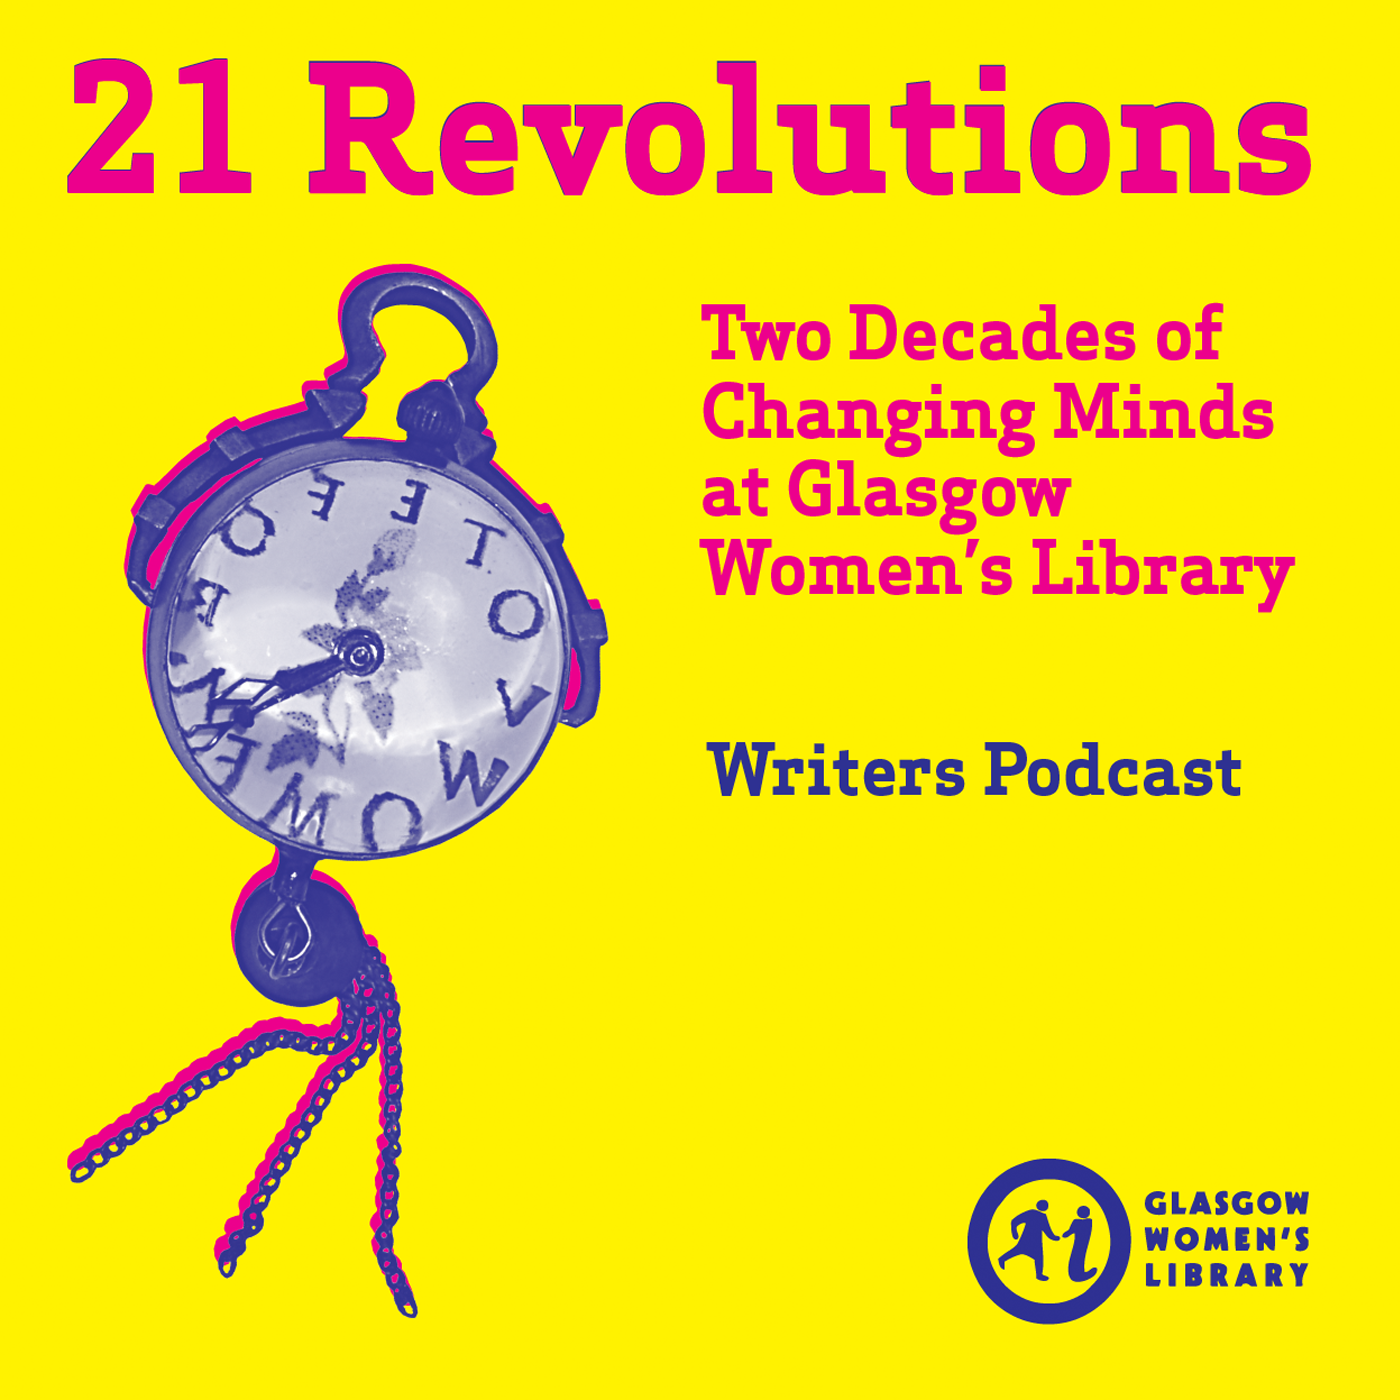 21 Revolutions Podcast – Glasgow Women's Library